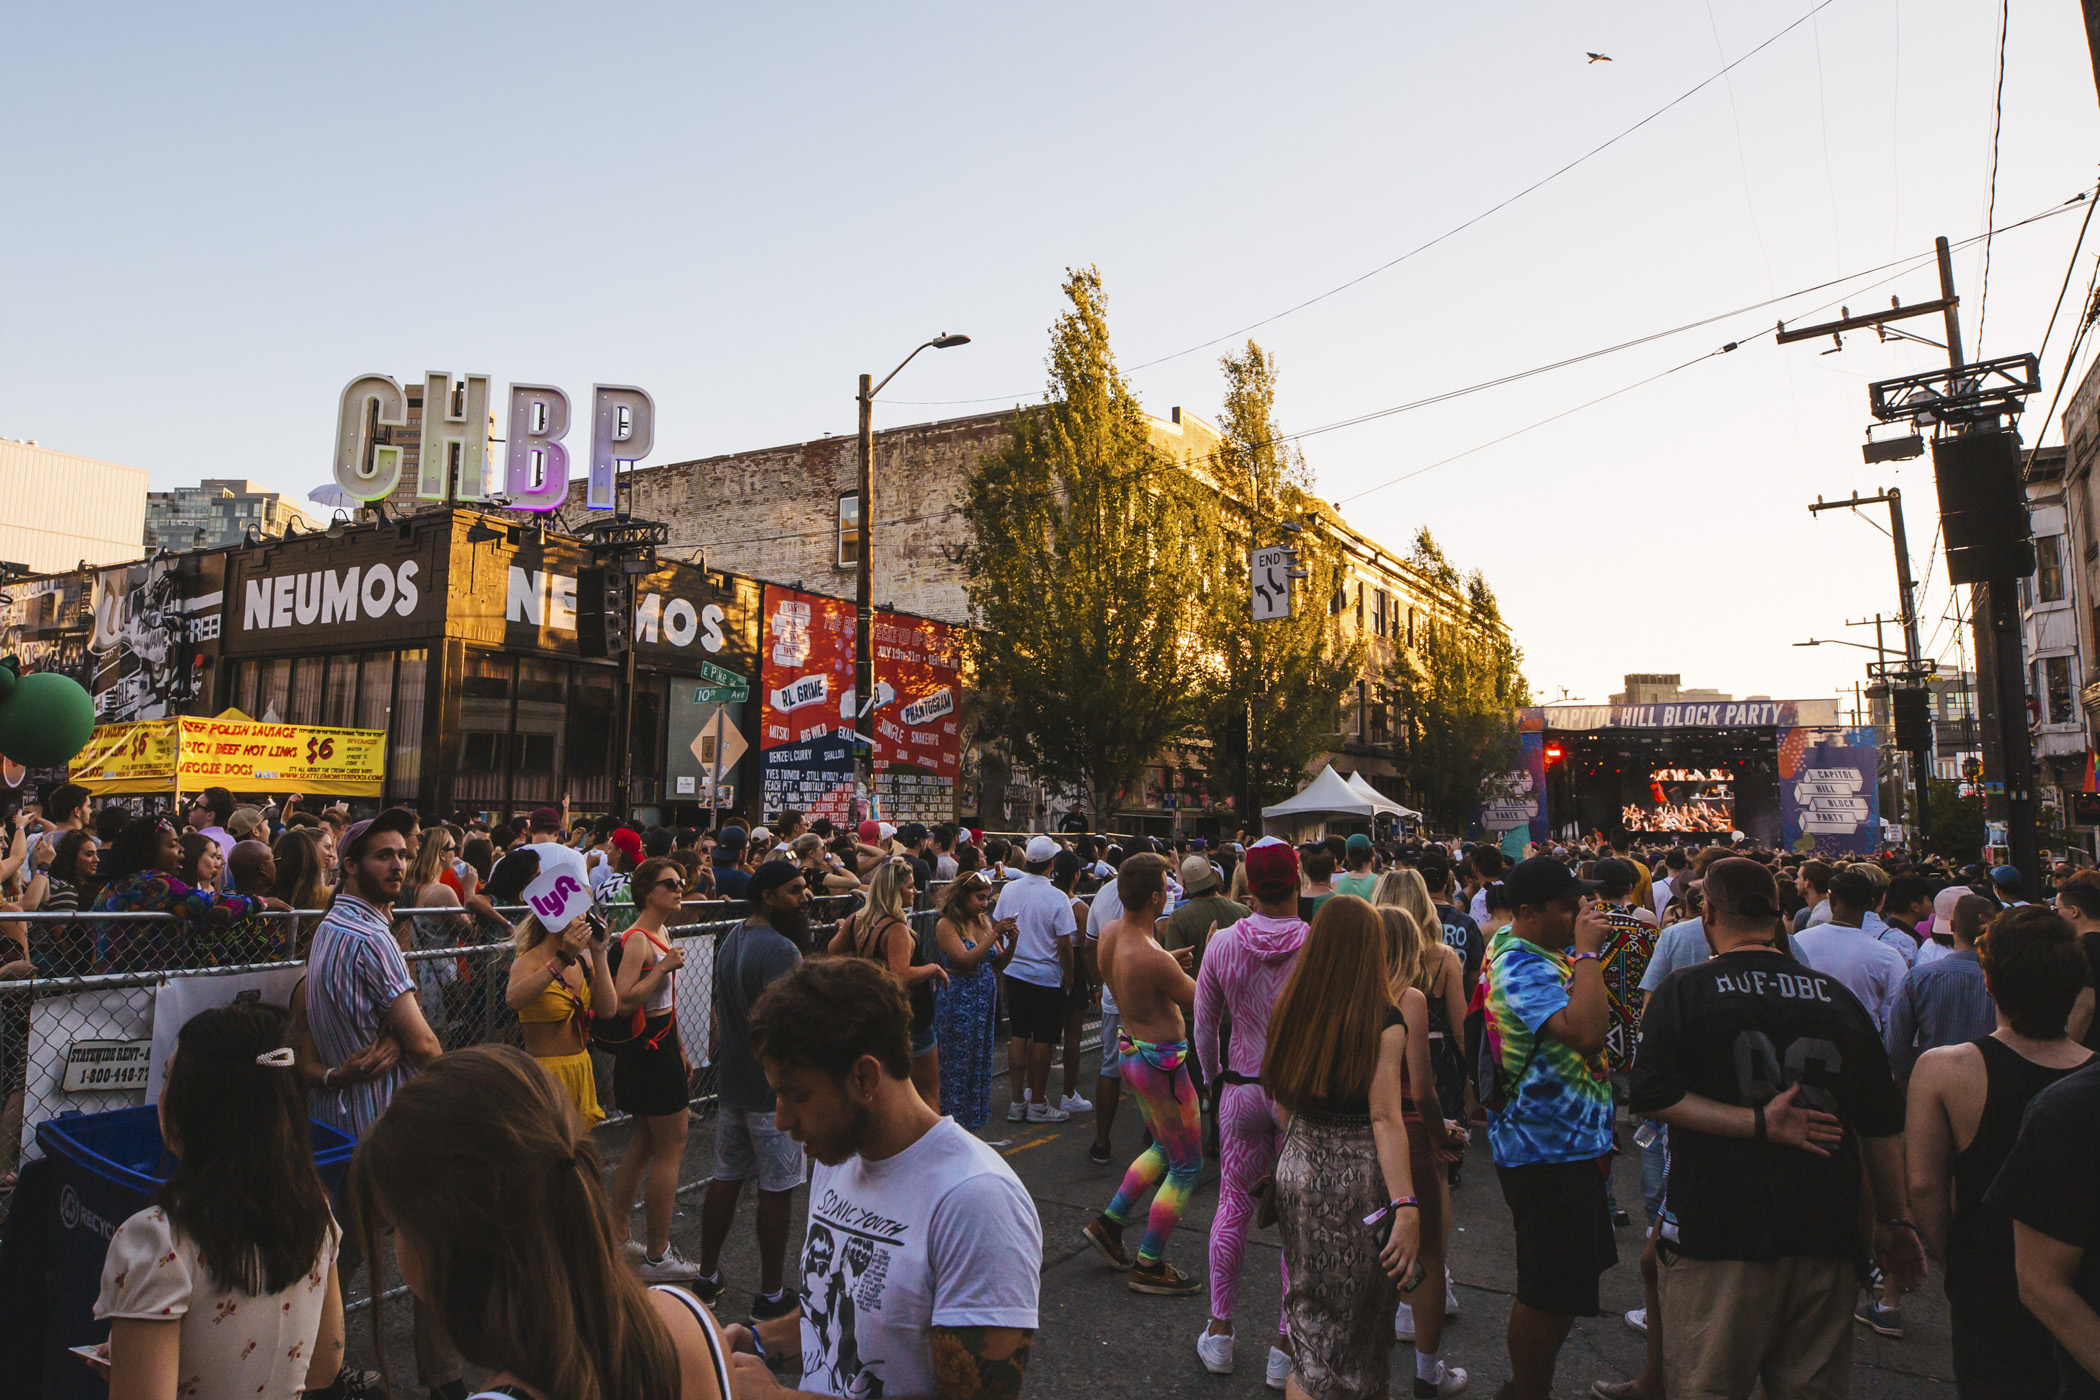 Over 20,000 people are expected to attend Capitol Hill Block Party this year! The annual three-day music festival in the heart of the Capitol Hill neighborhood has six stages, indoor and outdoor venues, multiple beer gardens and VIP lounges. Headliners include Lizzo, RL Grime and Phantogram - as well as promising local talent and performers across a variety of genres. (Image: Sunita Martini / Seattle Refined)